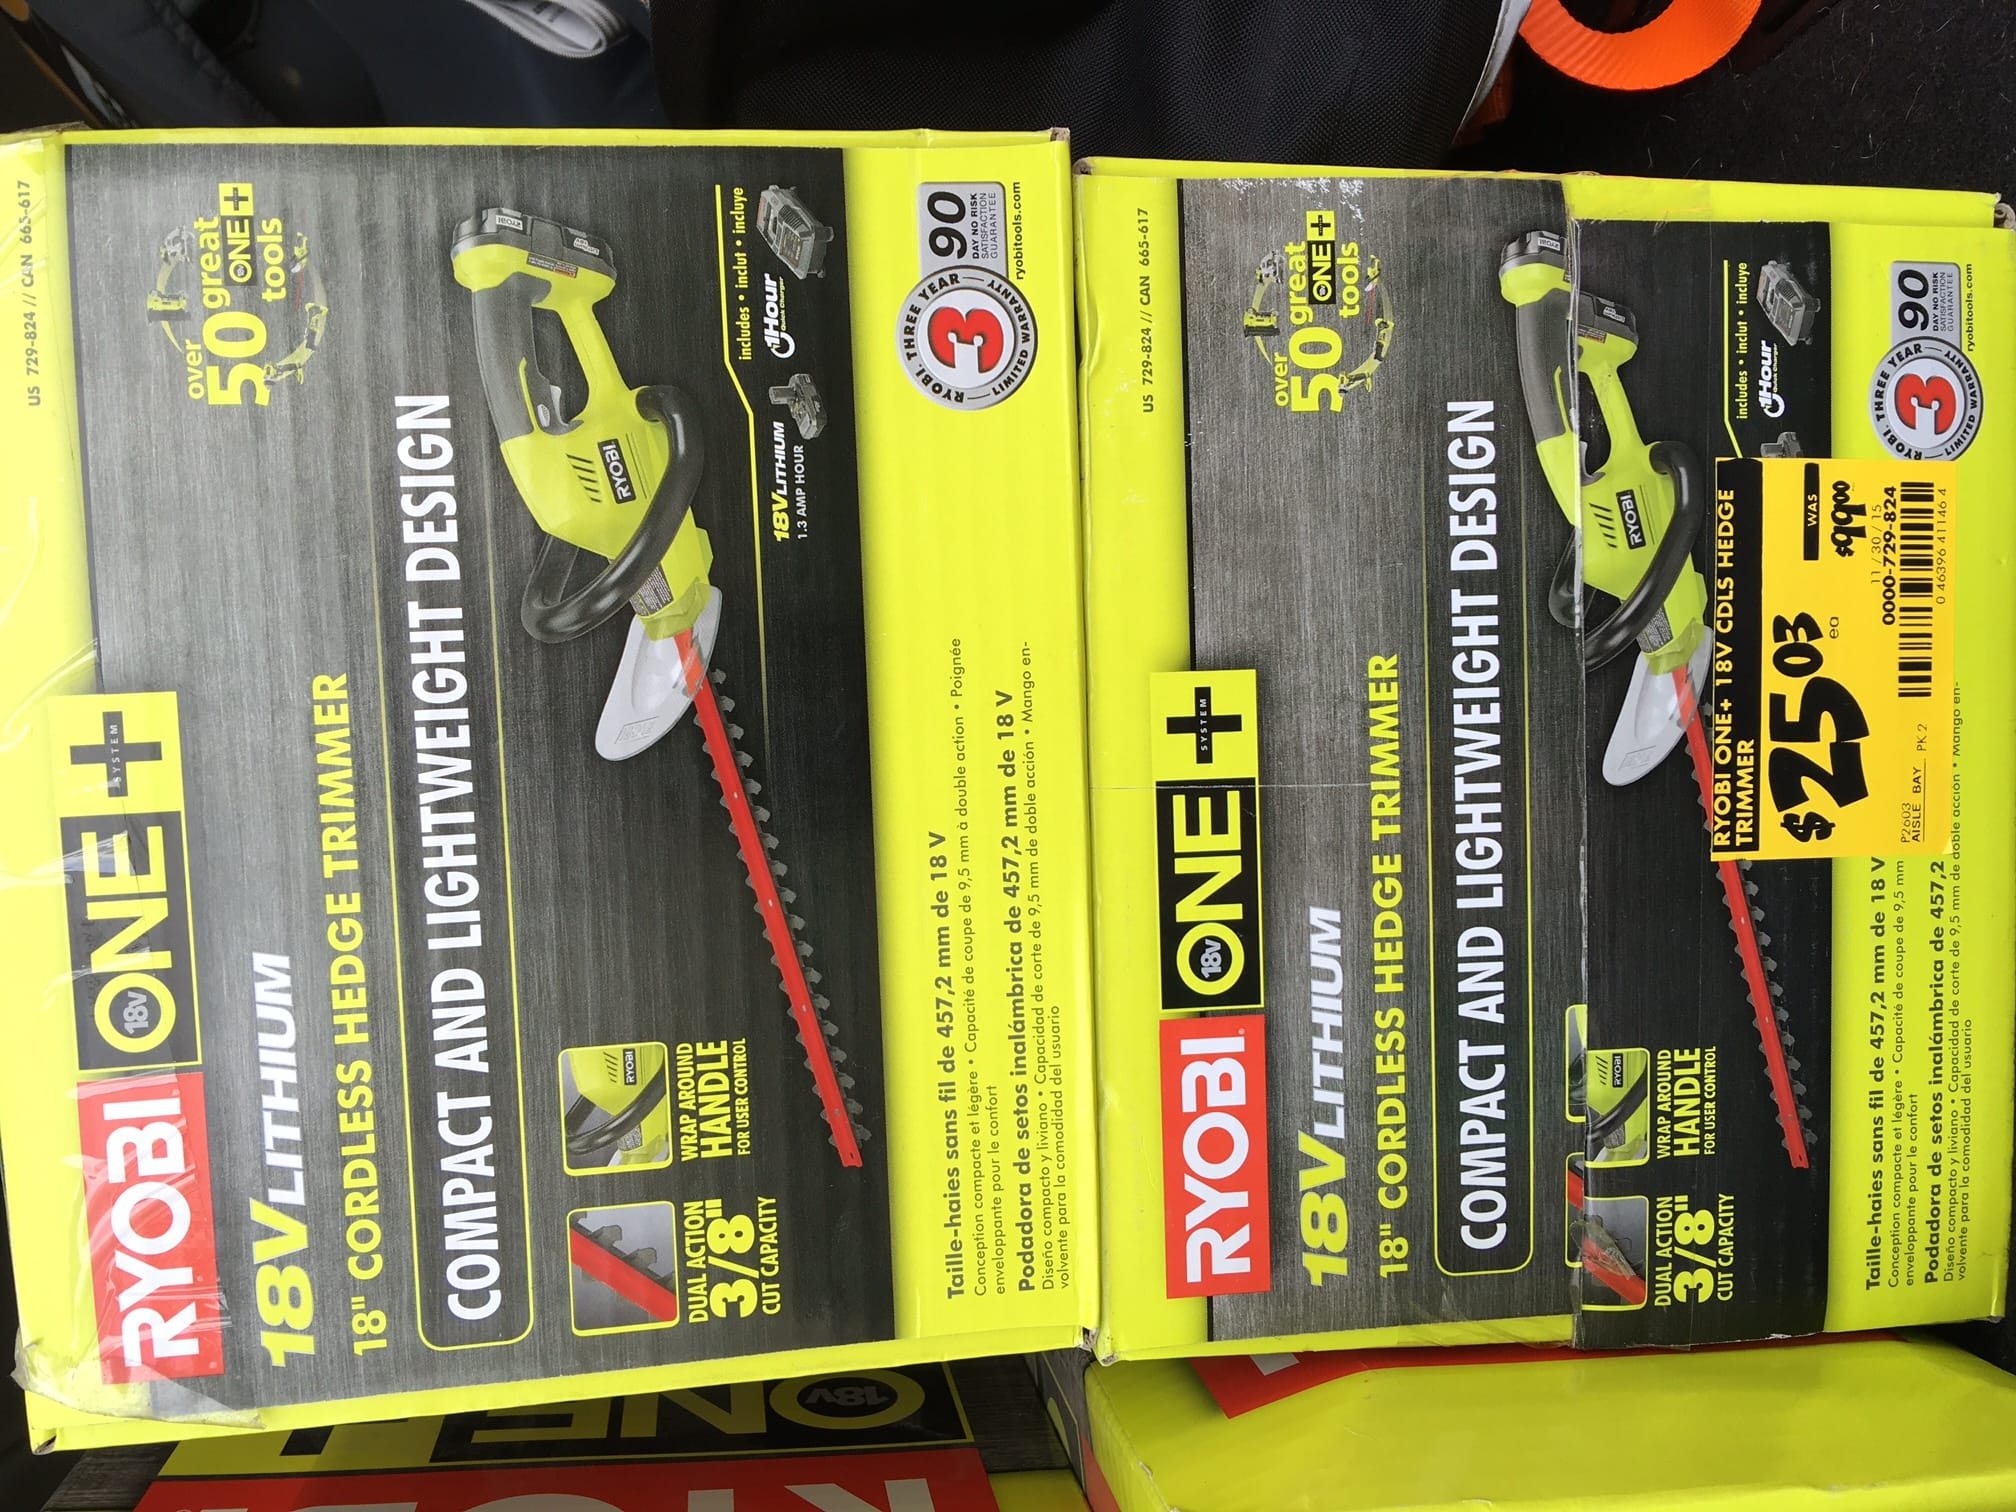 Ryobi 18v cordless hedge trimmer, Home Depot, $25.03 down from $99 B&M, YMMV